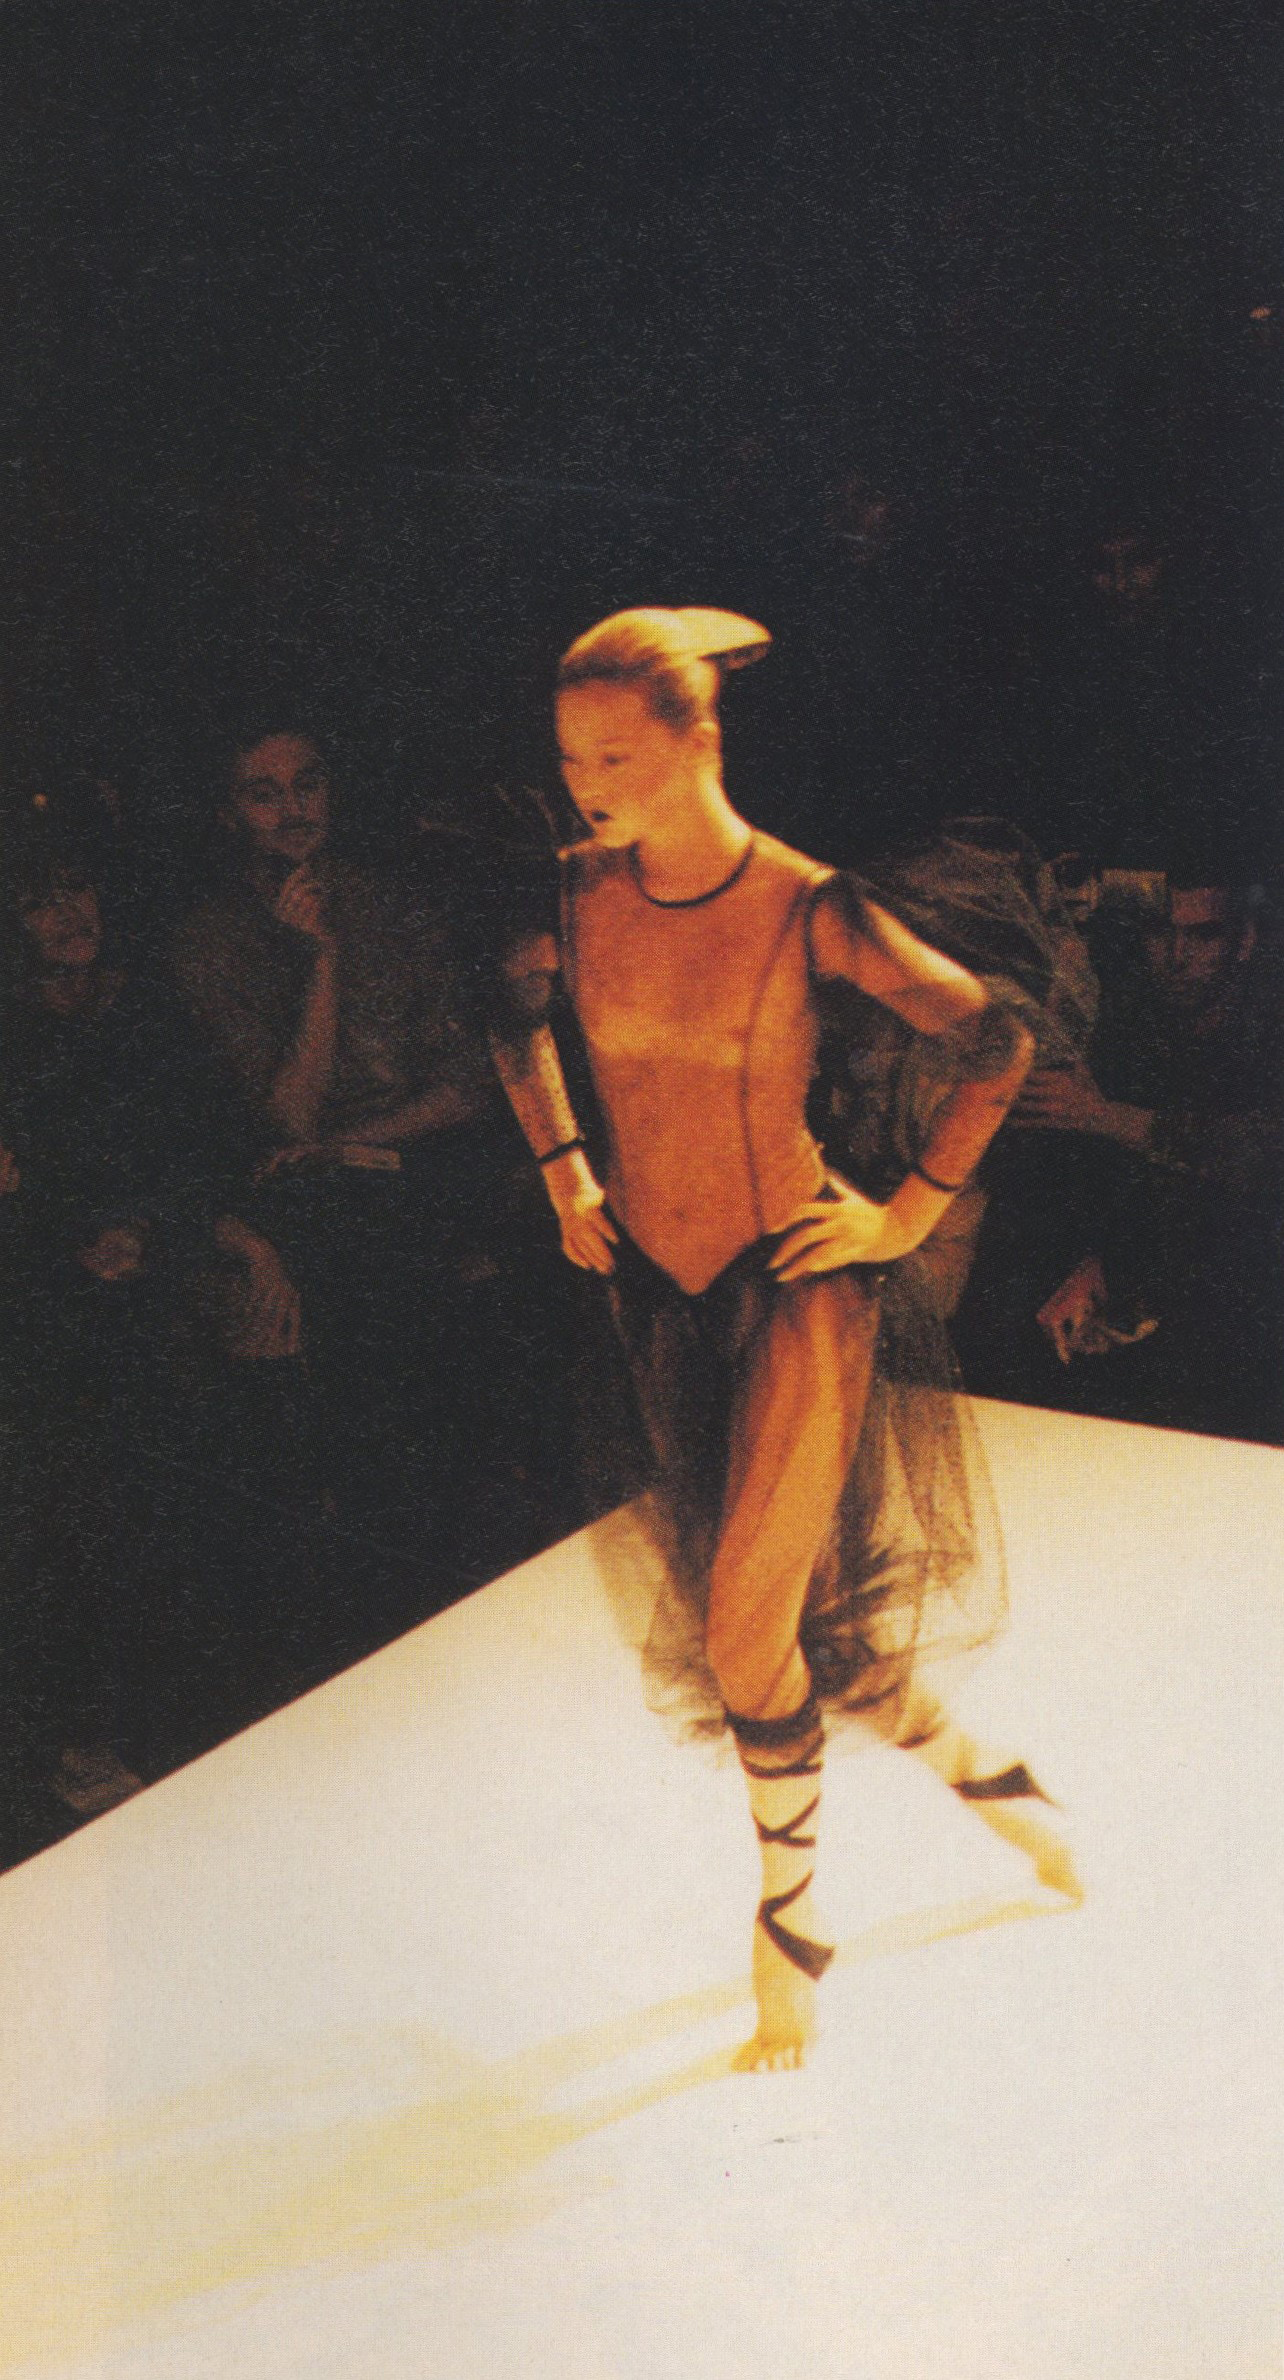 DEVON AOKI | JEREMY SCOTT | FASHION SHOW | PHOTOGRAPHY TERRY JONES | i-D NO.185 | APRIL 1999